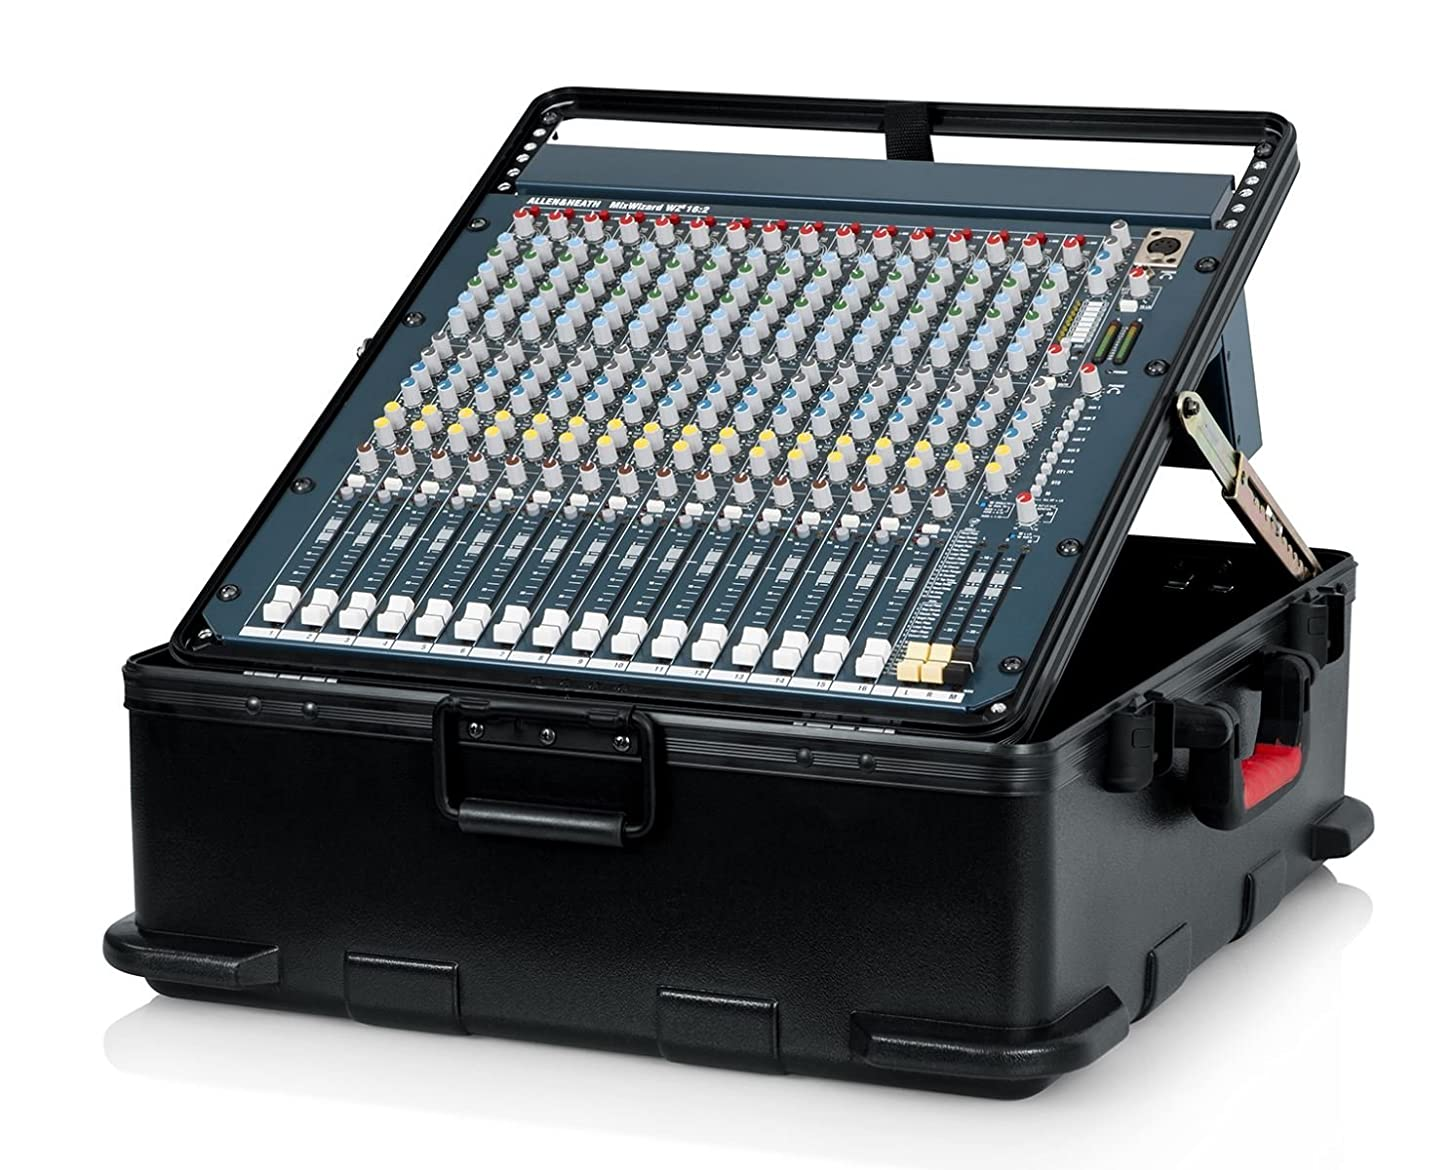 Gator Cases Molded Flight Case for Rack Mountable Mixers Up to 12U Rack Space with TSA Approved Locking Latch (GTSA-MIX12PU)